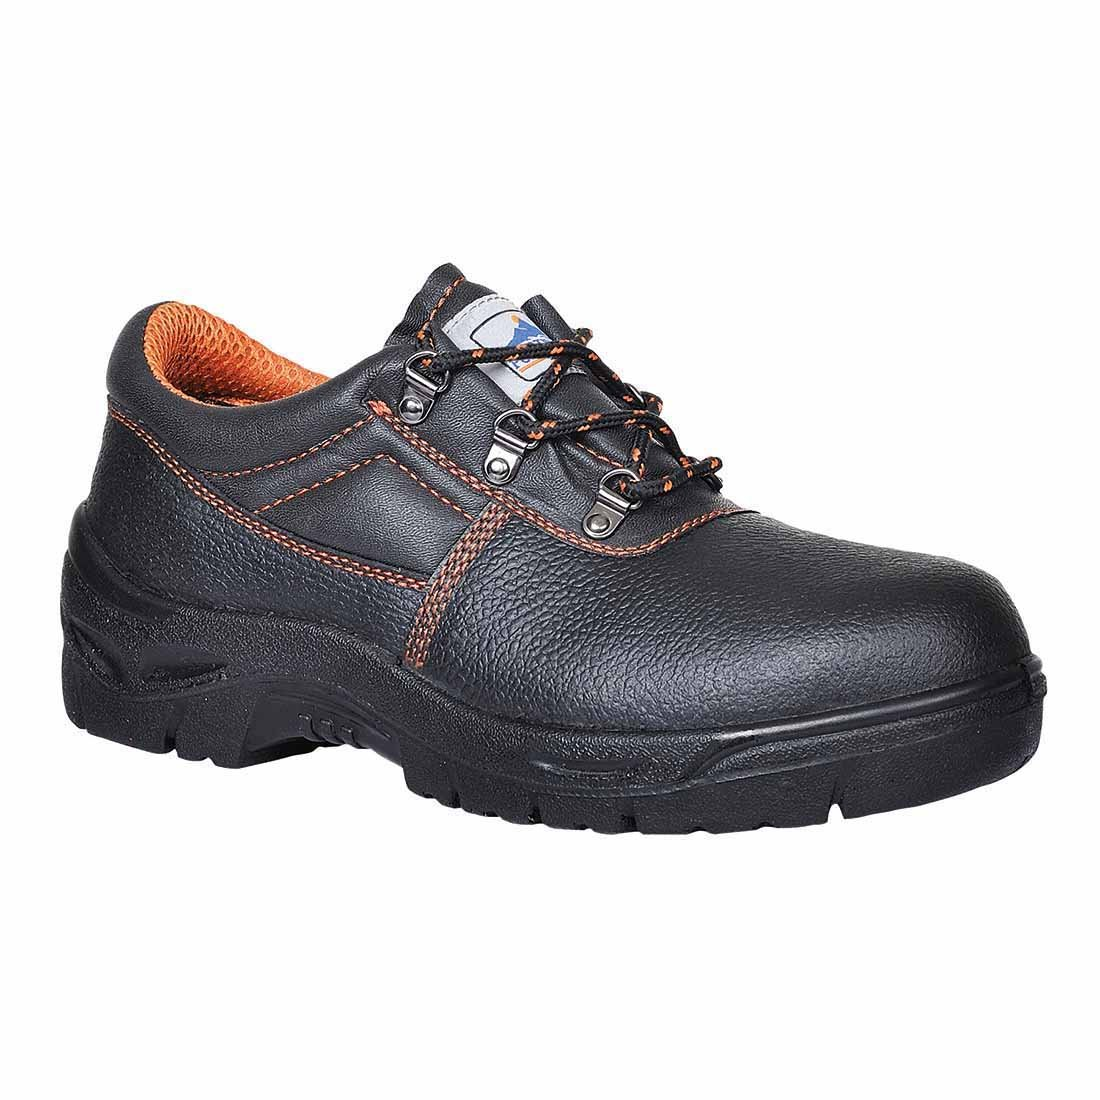 SUW - Steelite Ultra Workwear - Zapatos de seguridad S1P, EU 44 - UK 10, negro, 1: Amazon.es: Industria, empresas y ciencia